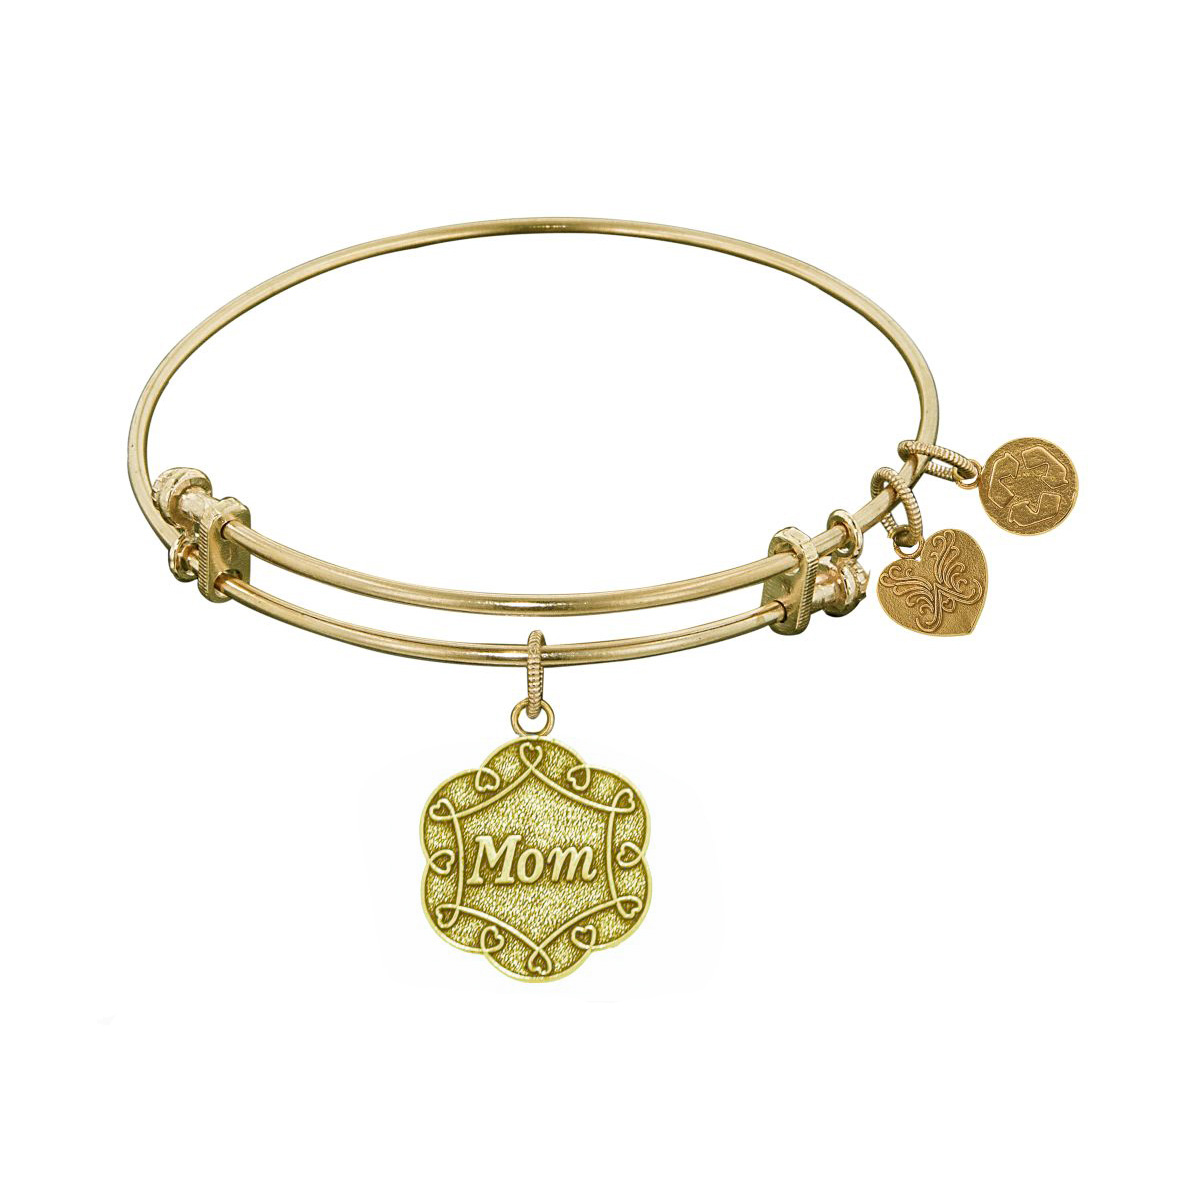 Yellow Stipple Finish Brass Mom On 7 Leaf Flower Like Charm Angelica Bangle Bracelet, 7.25″